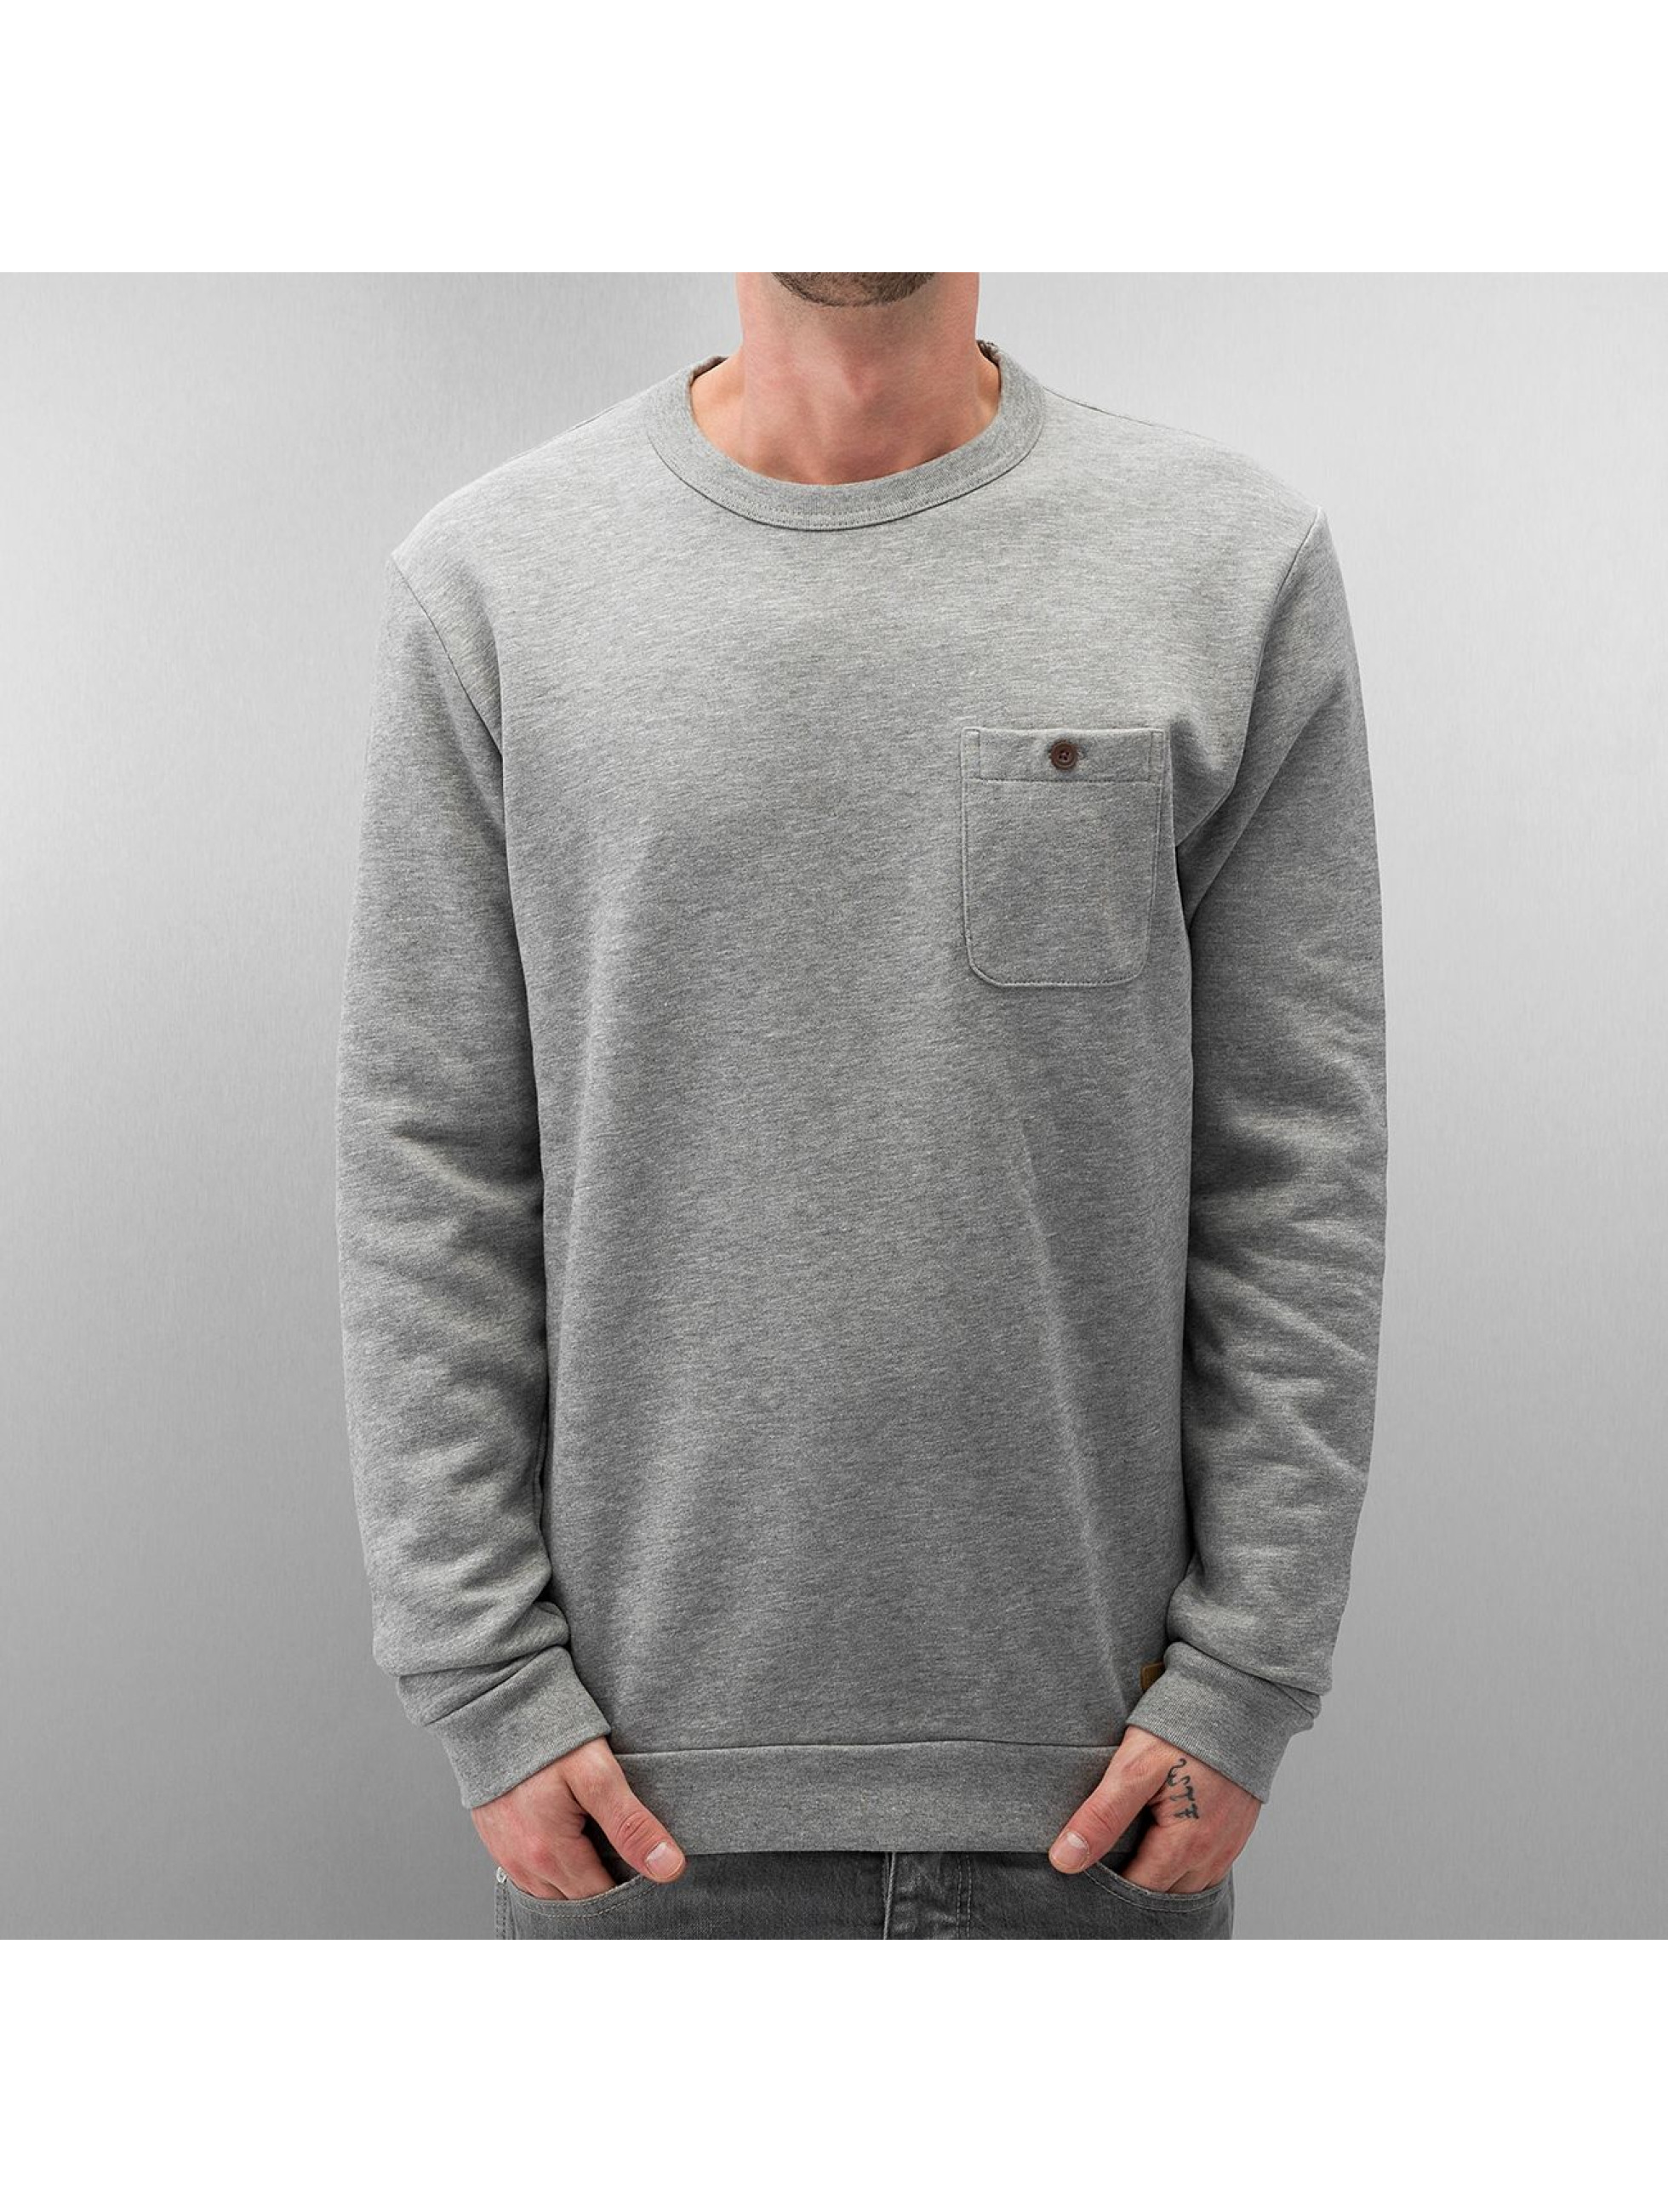 Selected Männer Pullover Delik in grau